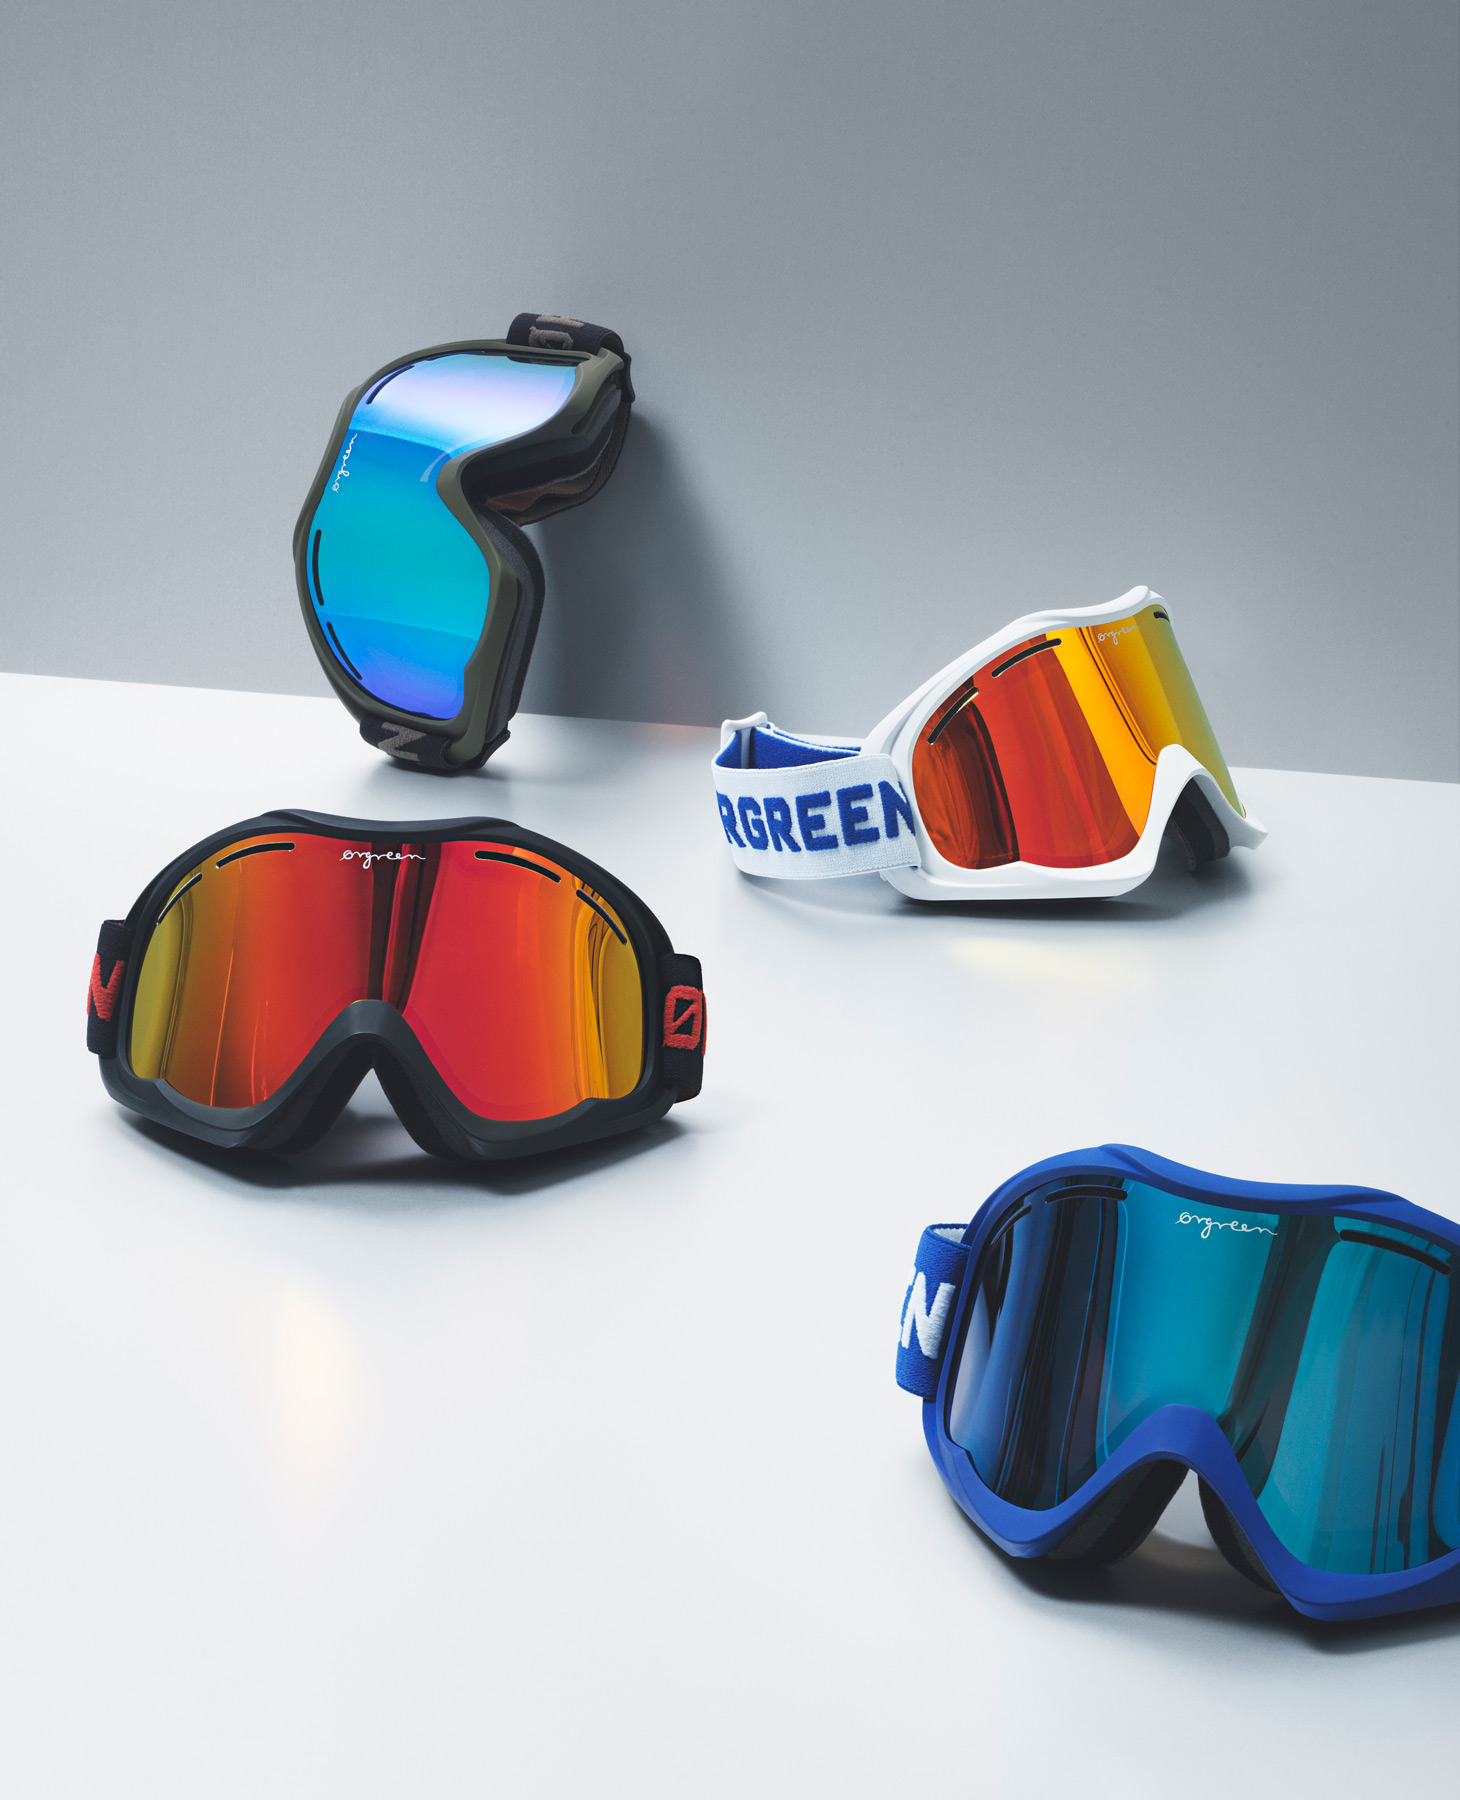 Ørgreen_Snow_Goggles_Group